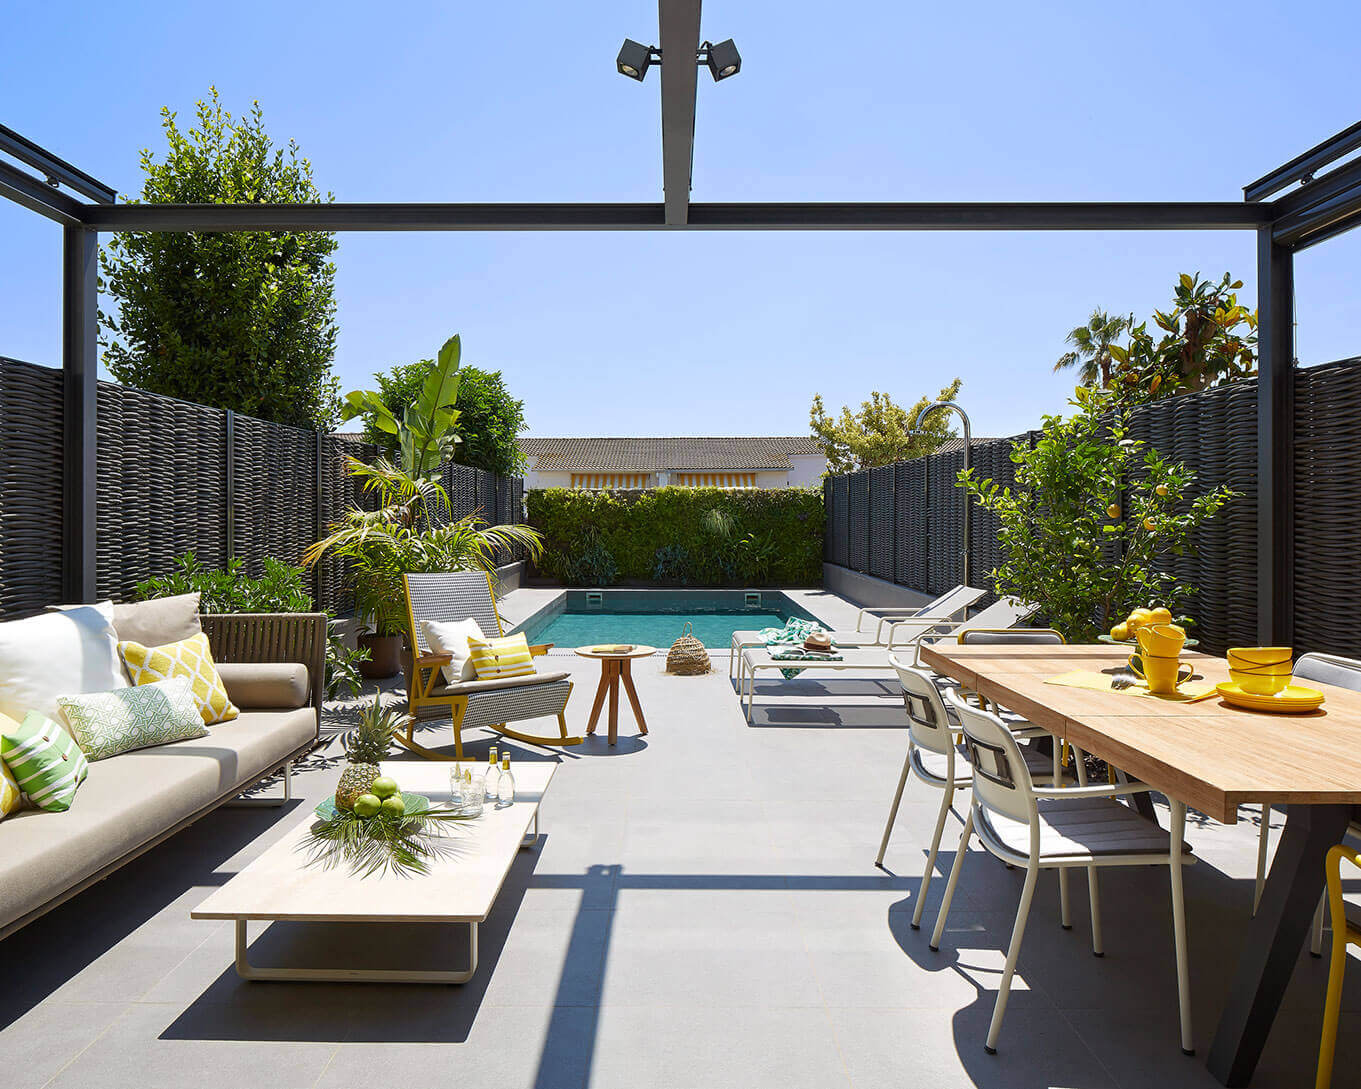 Outdoor lounge area with pool and plants.